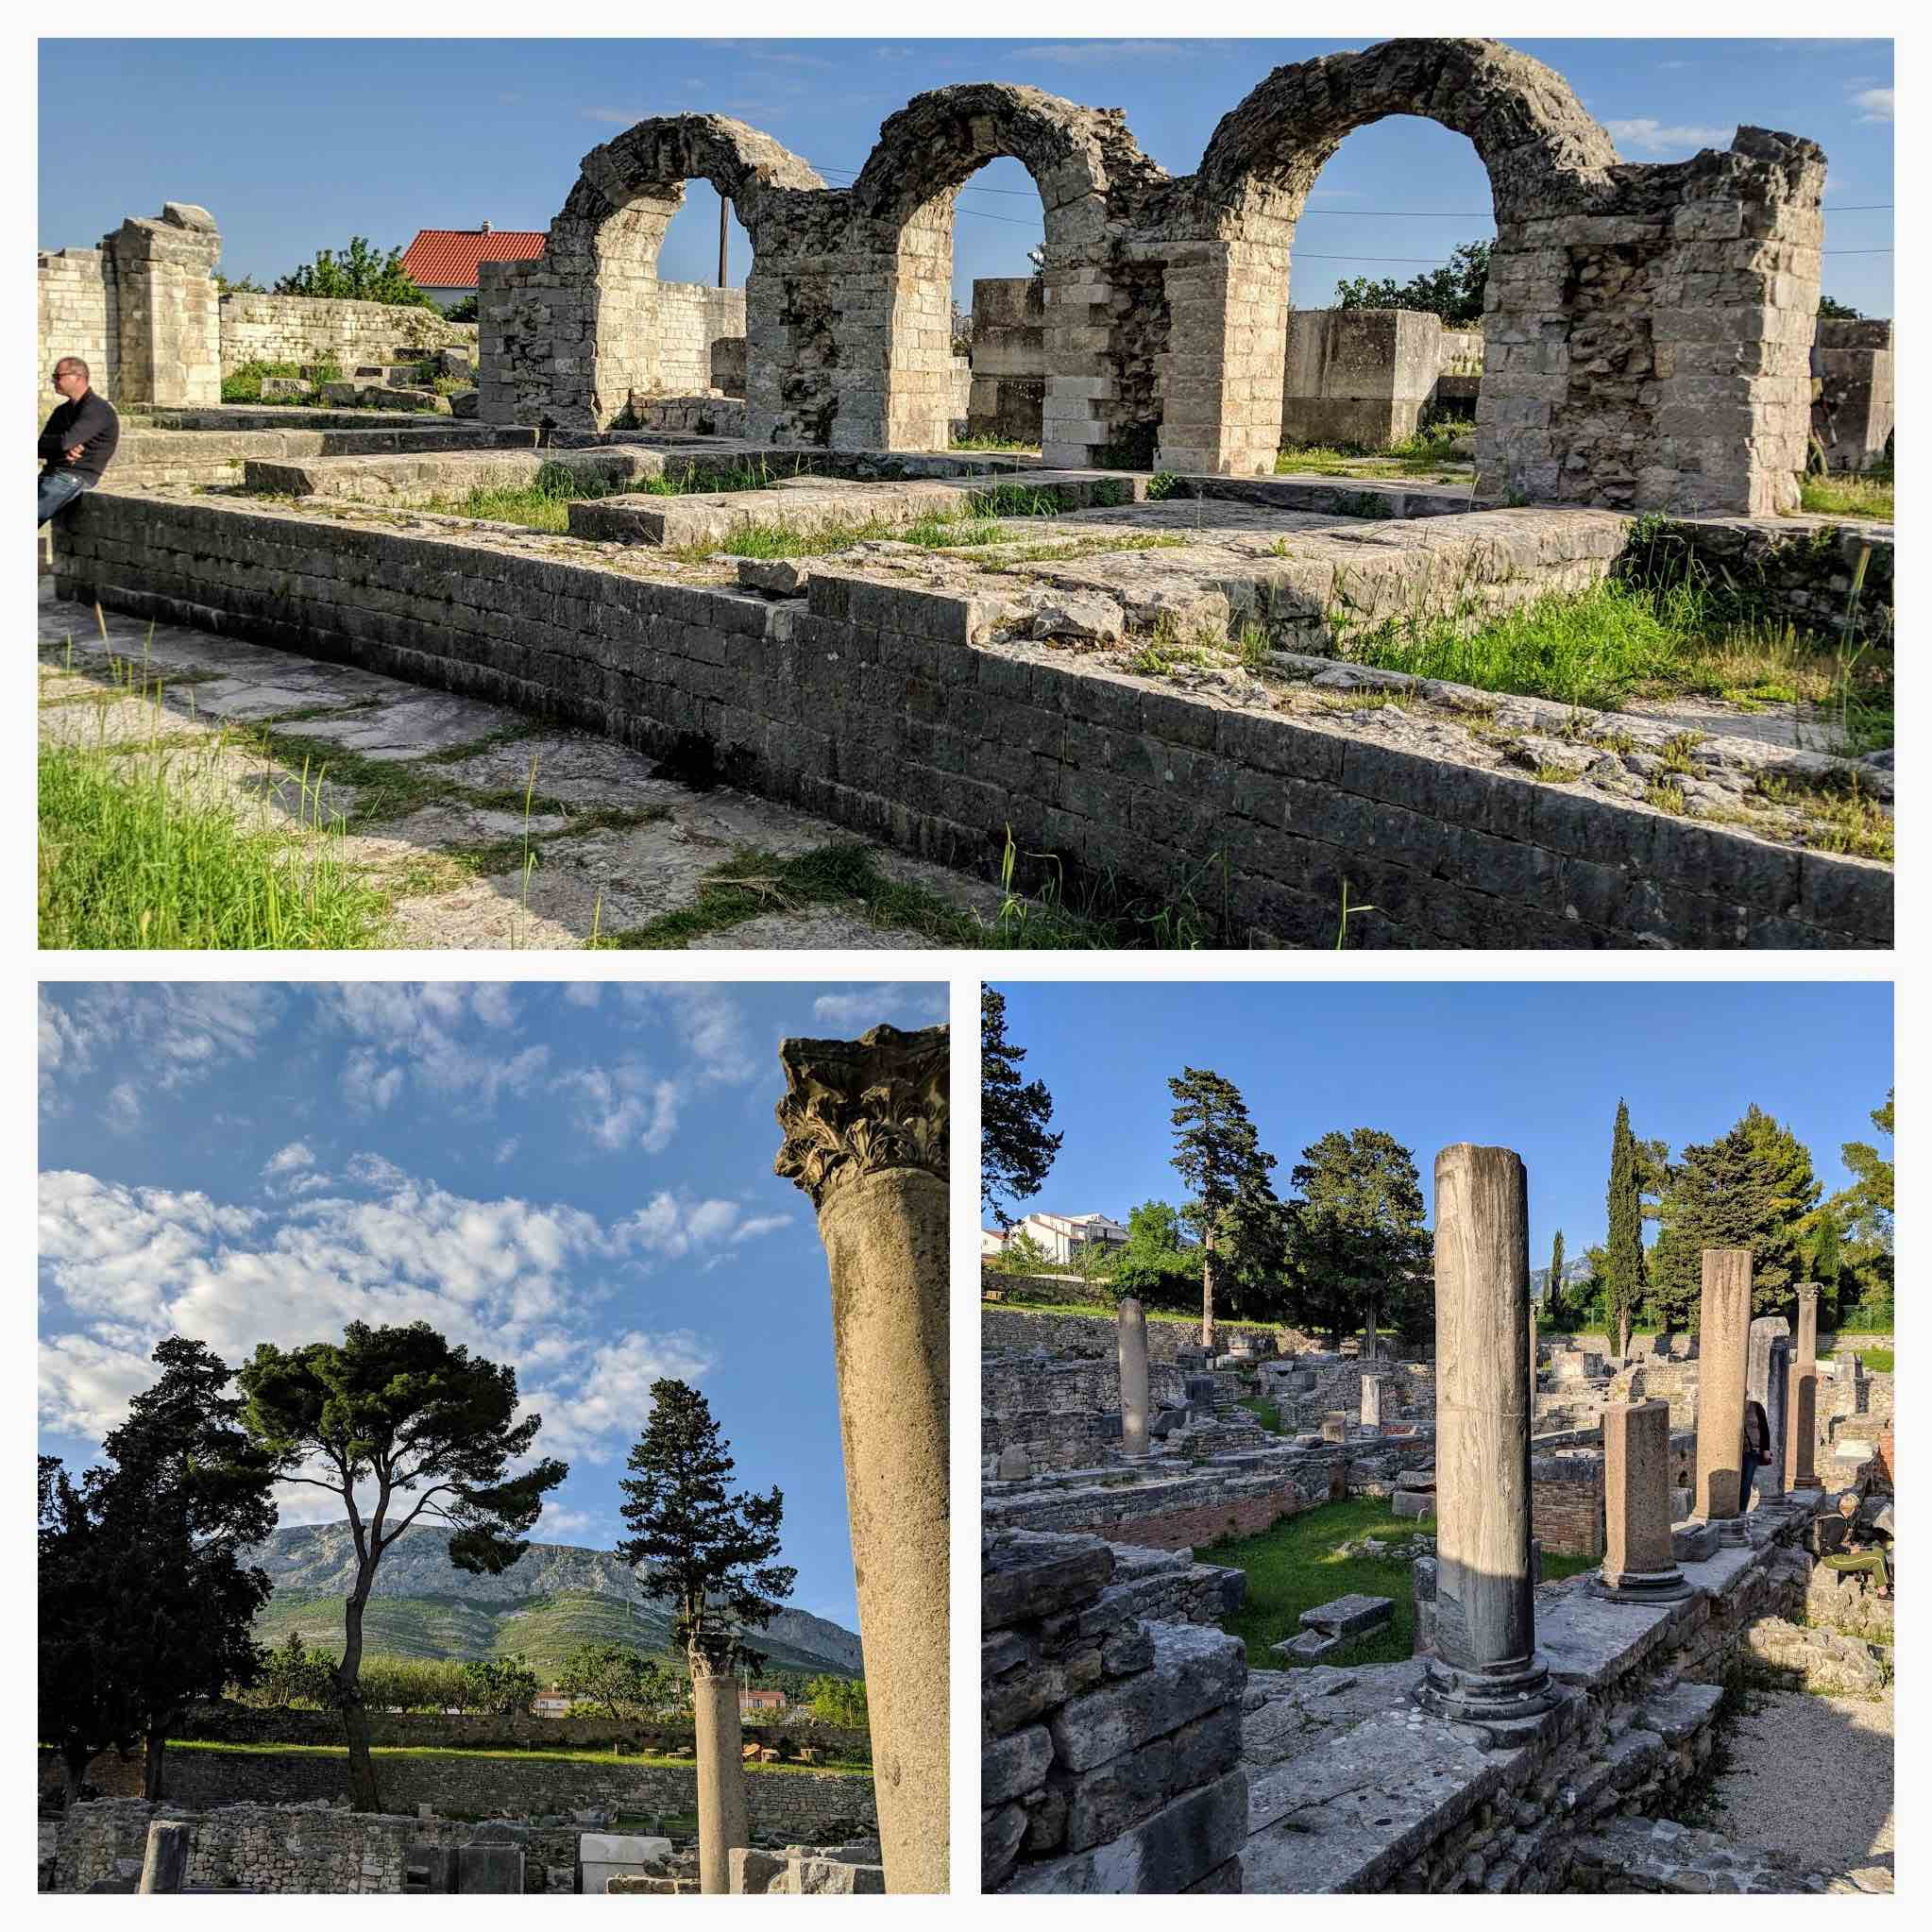 Salona amfitheater